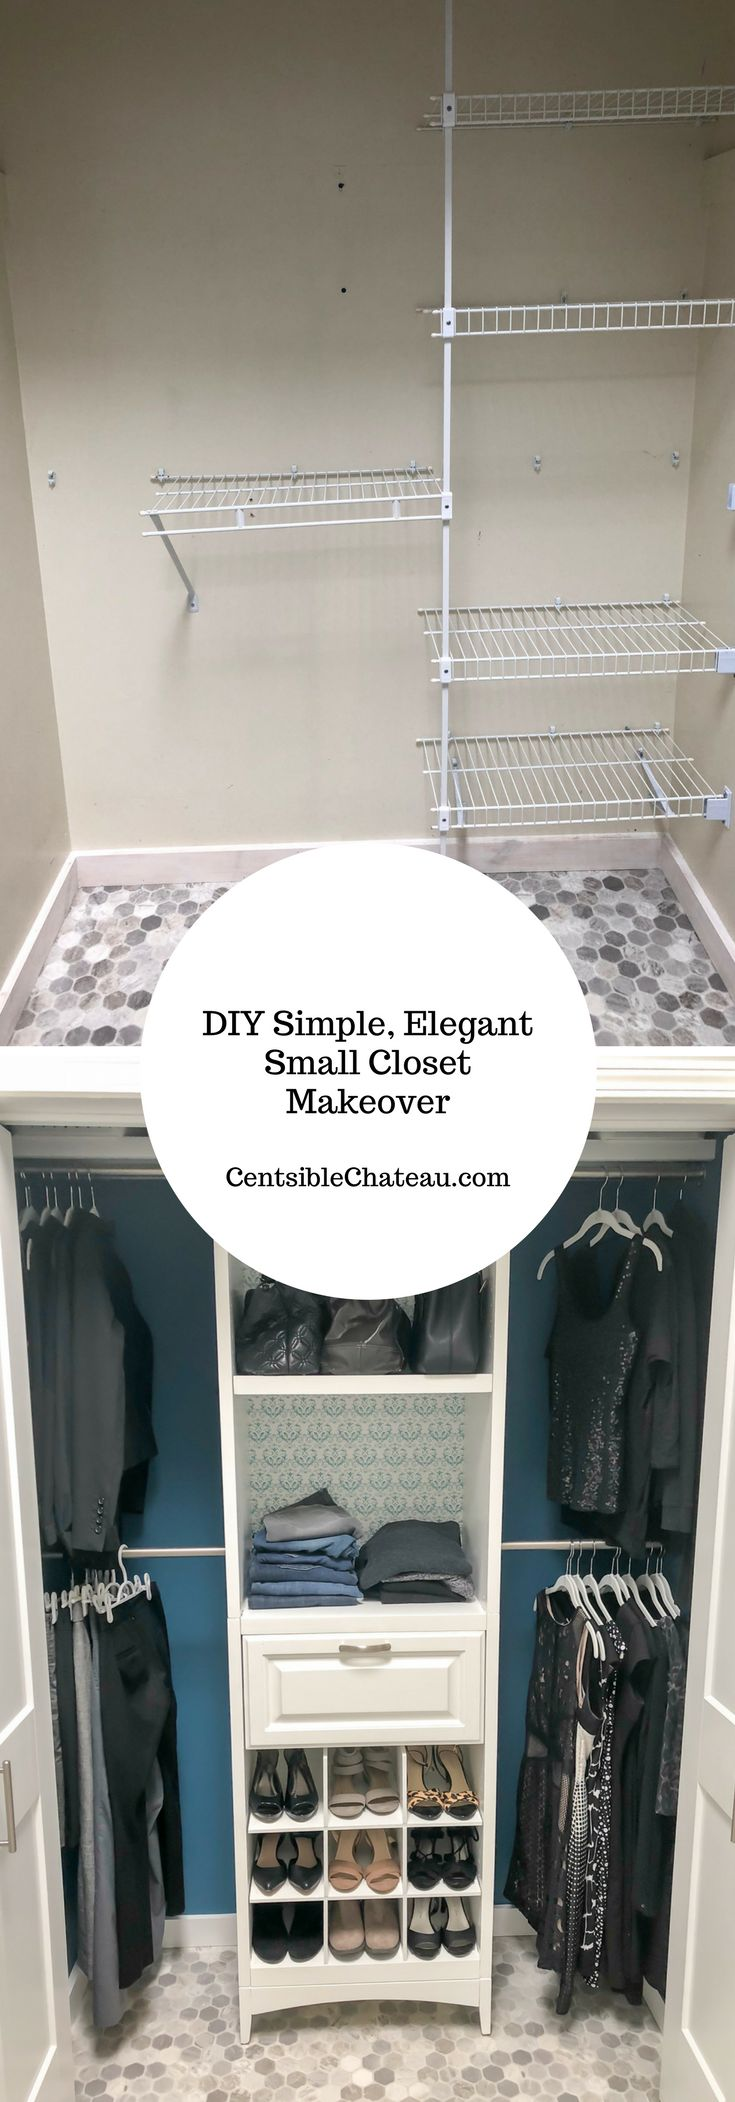 We transformed an ugly, useless closet into a dream closet with tons of organization. See how you can do it too! Click here to find out where to find the inexpensive closet organizer and supplies. #closet #closetorganizer #closetmakeover #organization